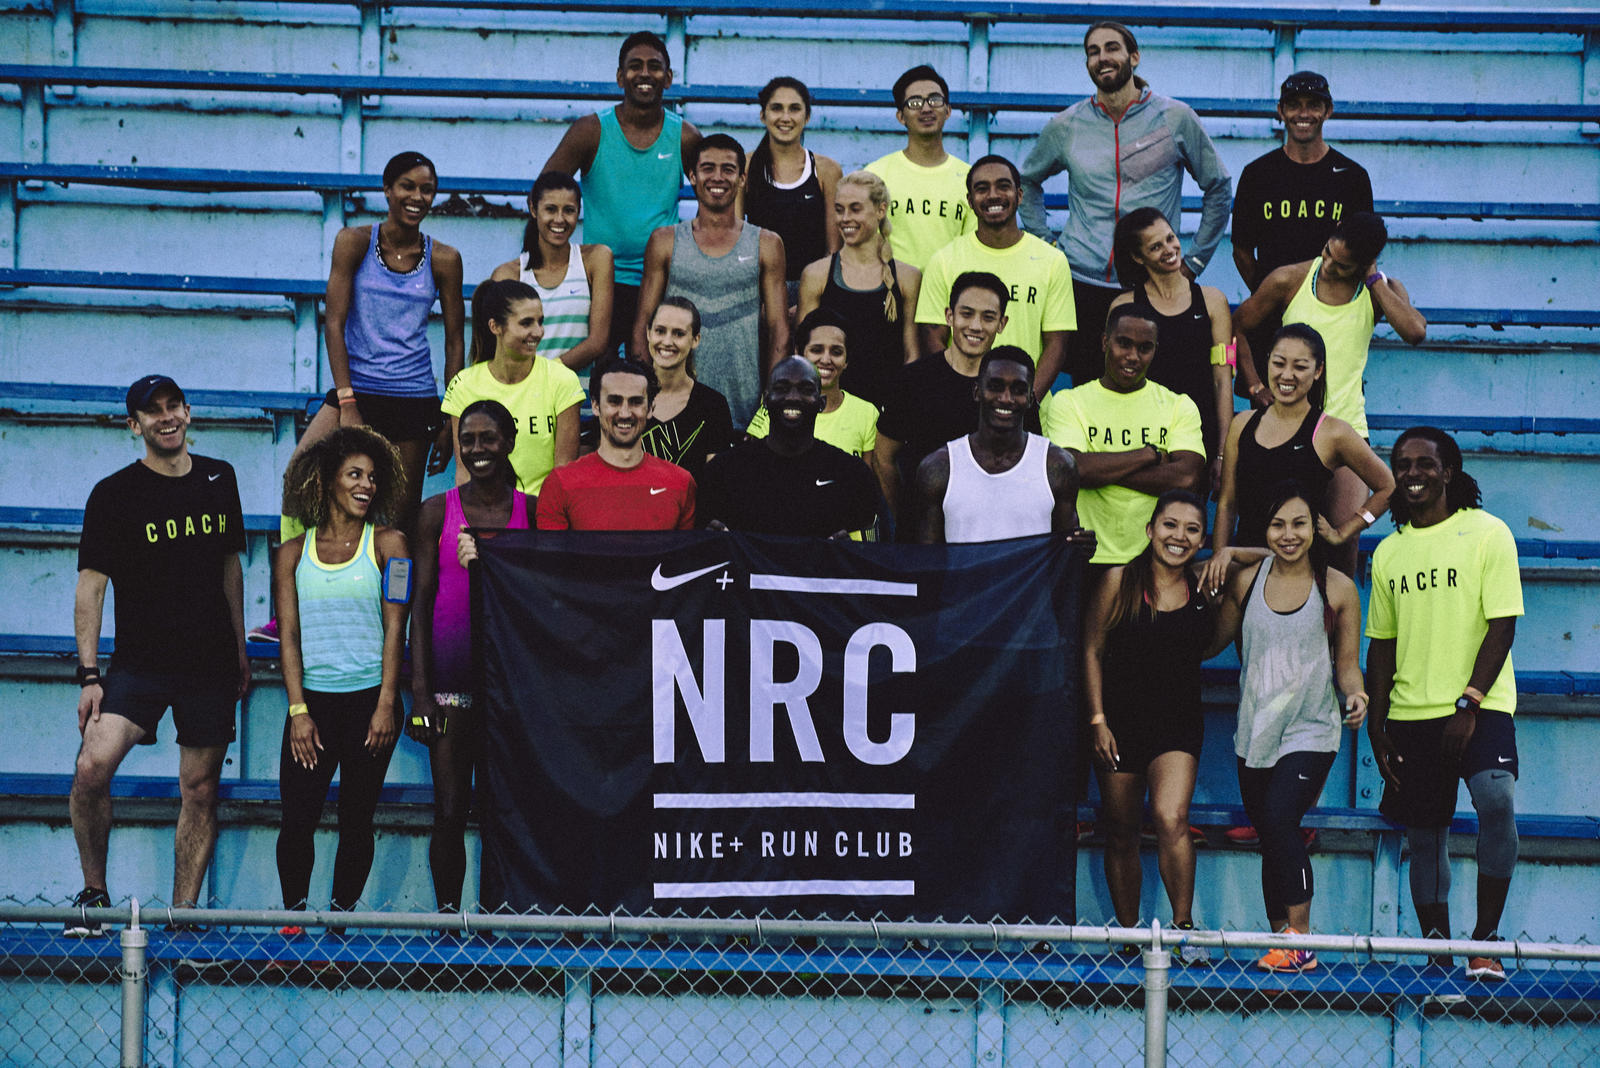 Posada Regresa perdí mi camino  Nike+ Run Club Rundown: The Power of We - Nike News